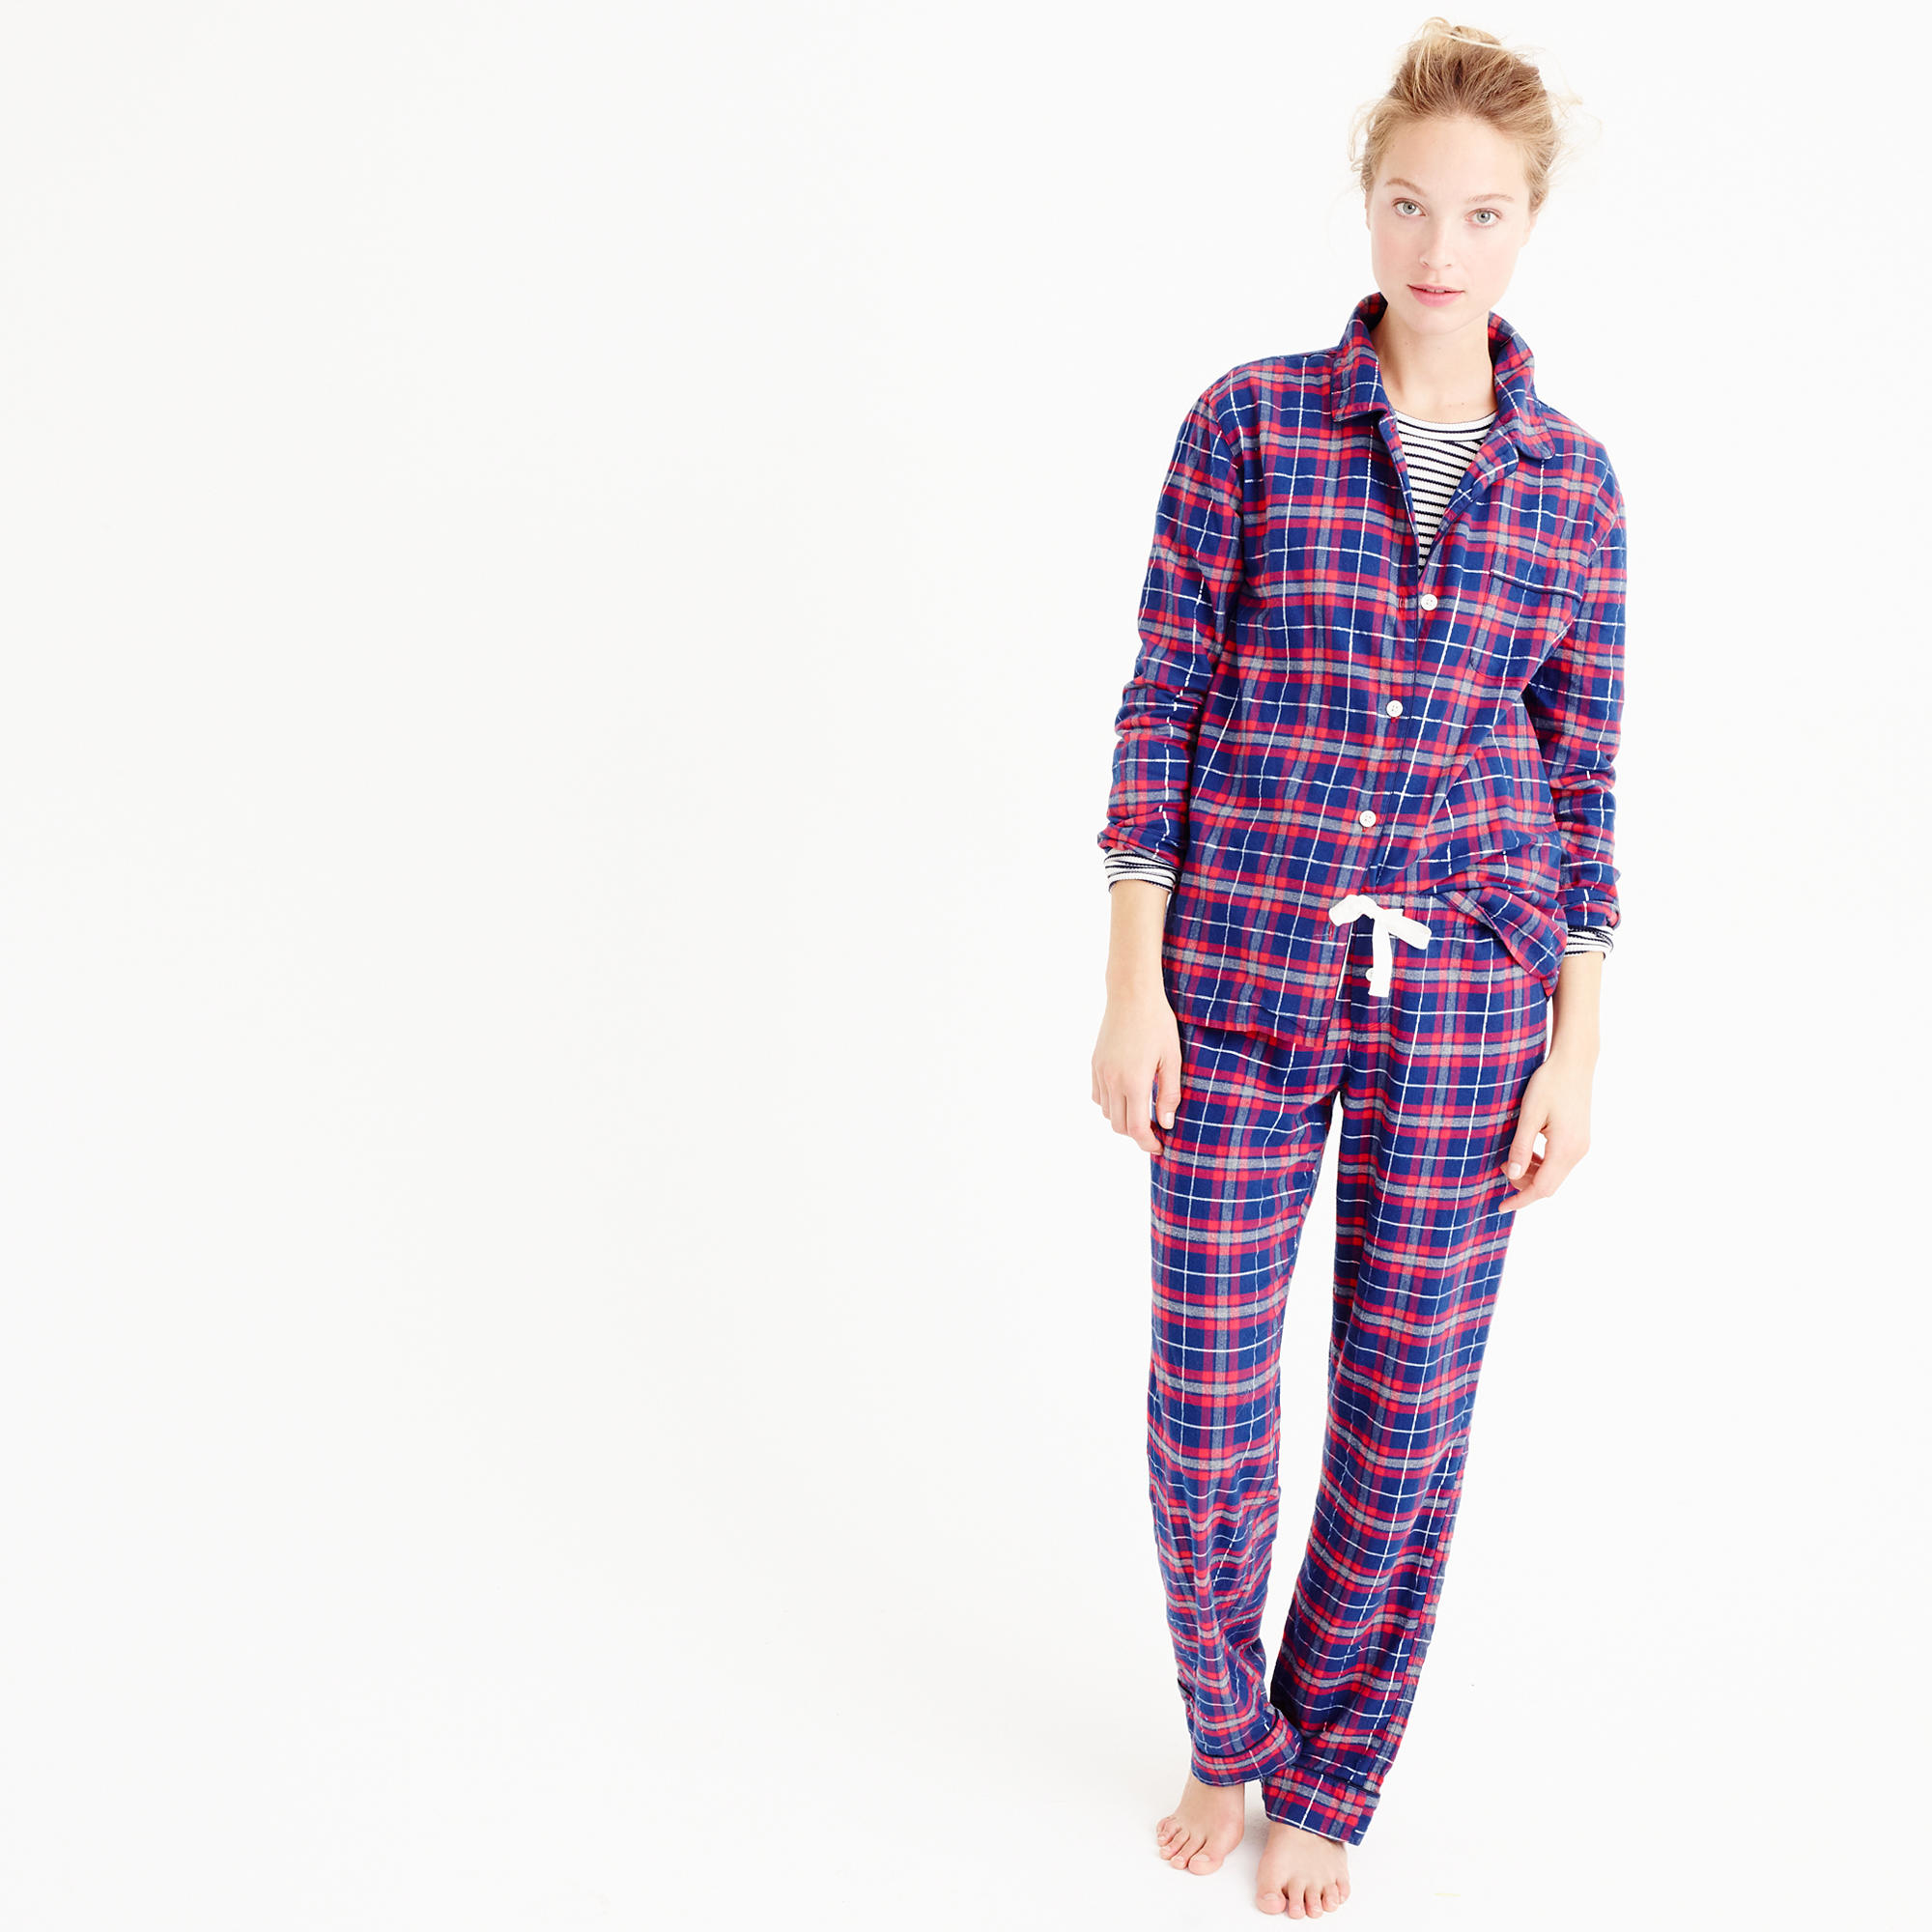 If you struggle finding pjs to fit you right, check out petite sleepwear at Lands' End. All your favorite comfortable pieces are made to fit your petite frame!